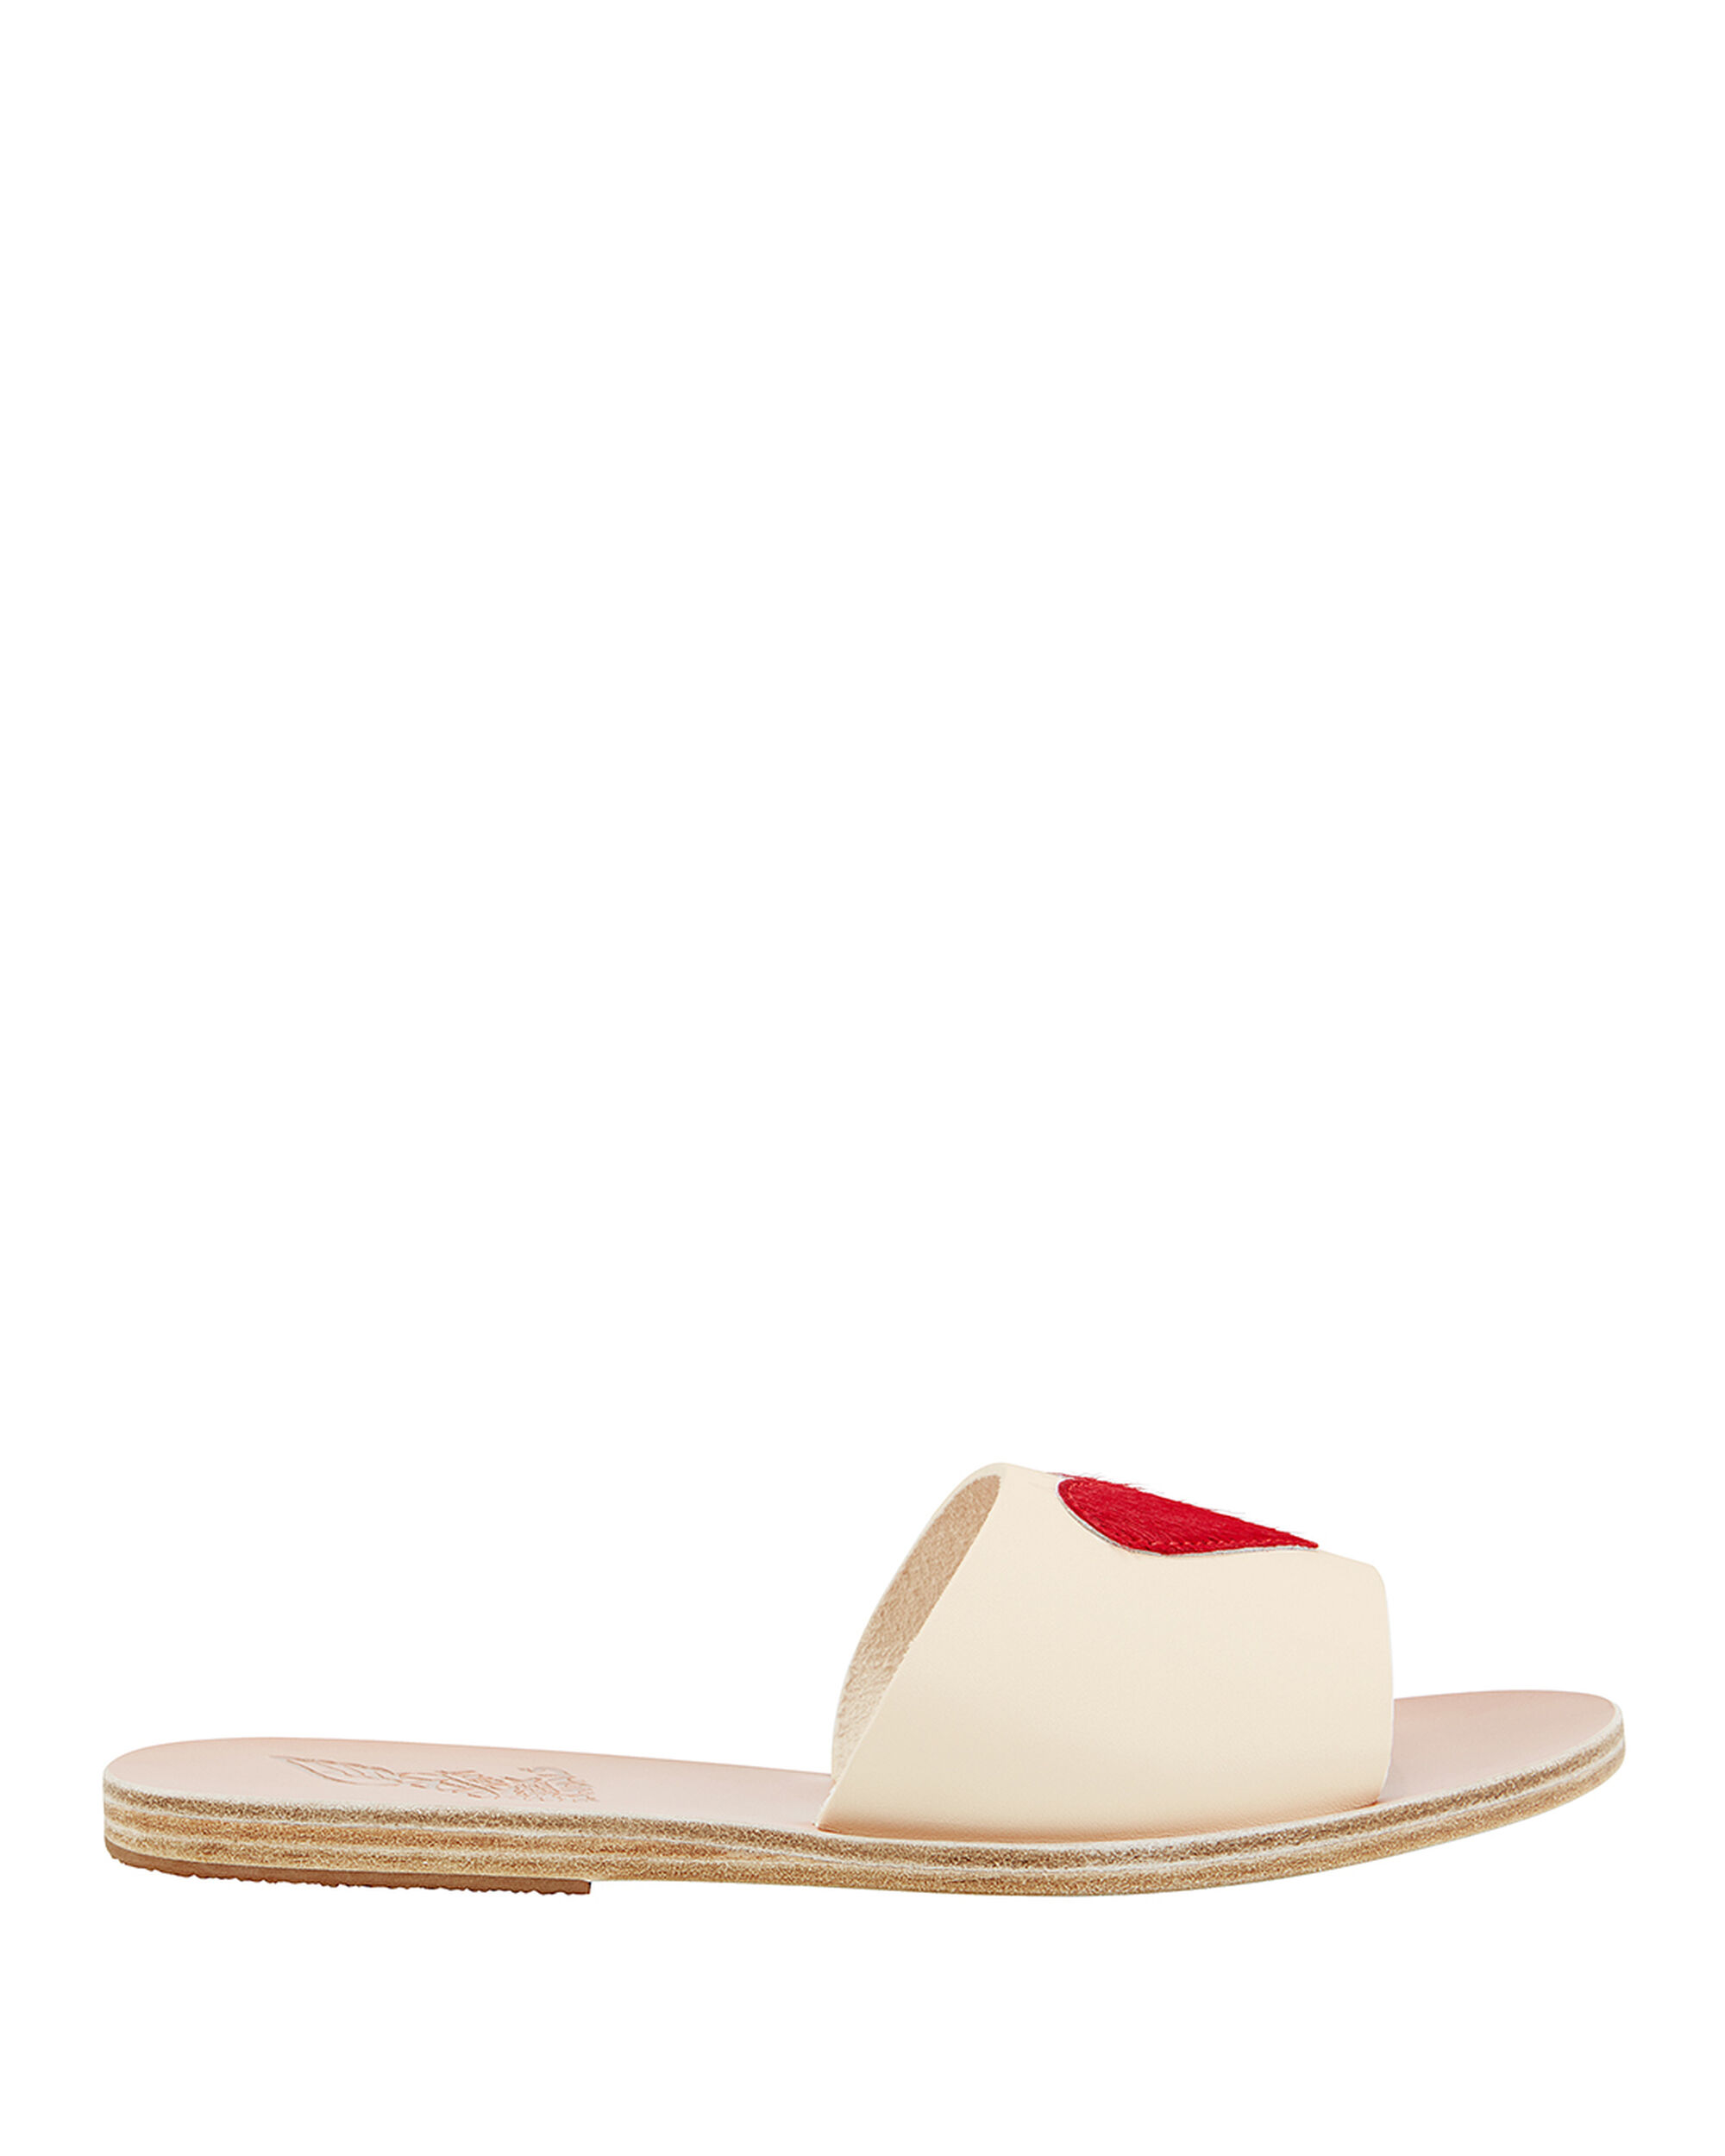 Taygete Eros Red Sandals, WHITE, hi-res